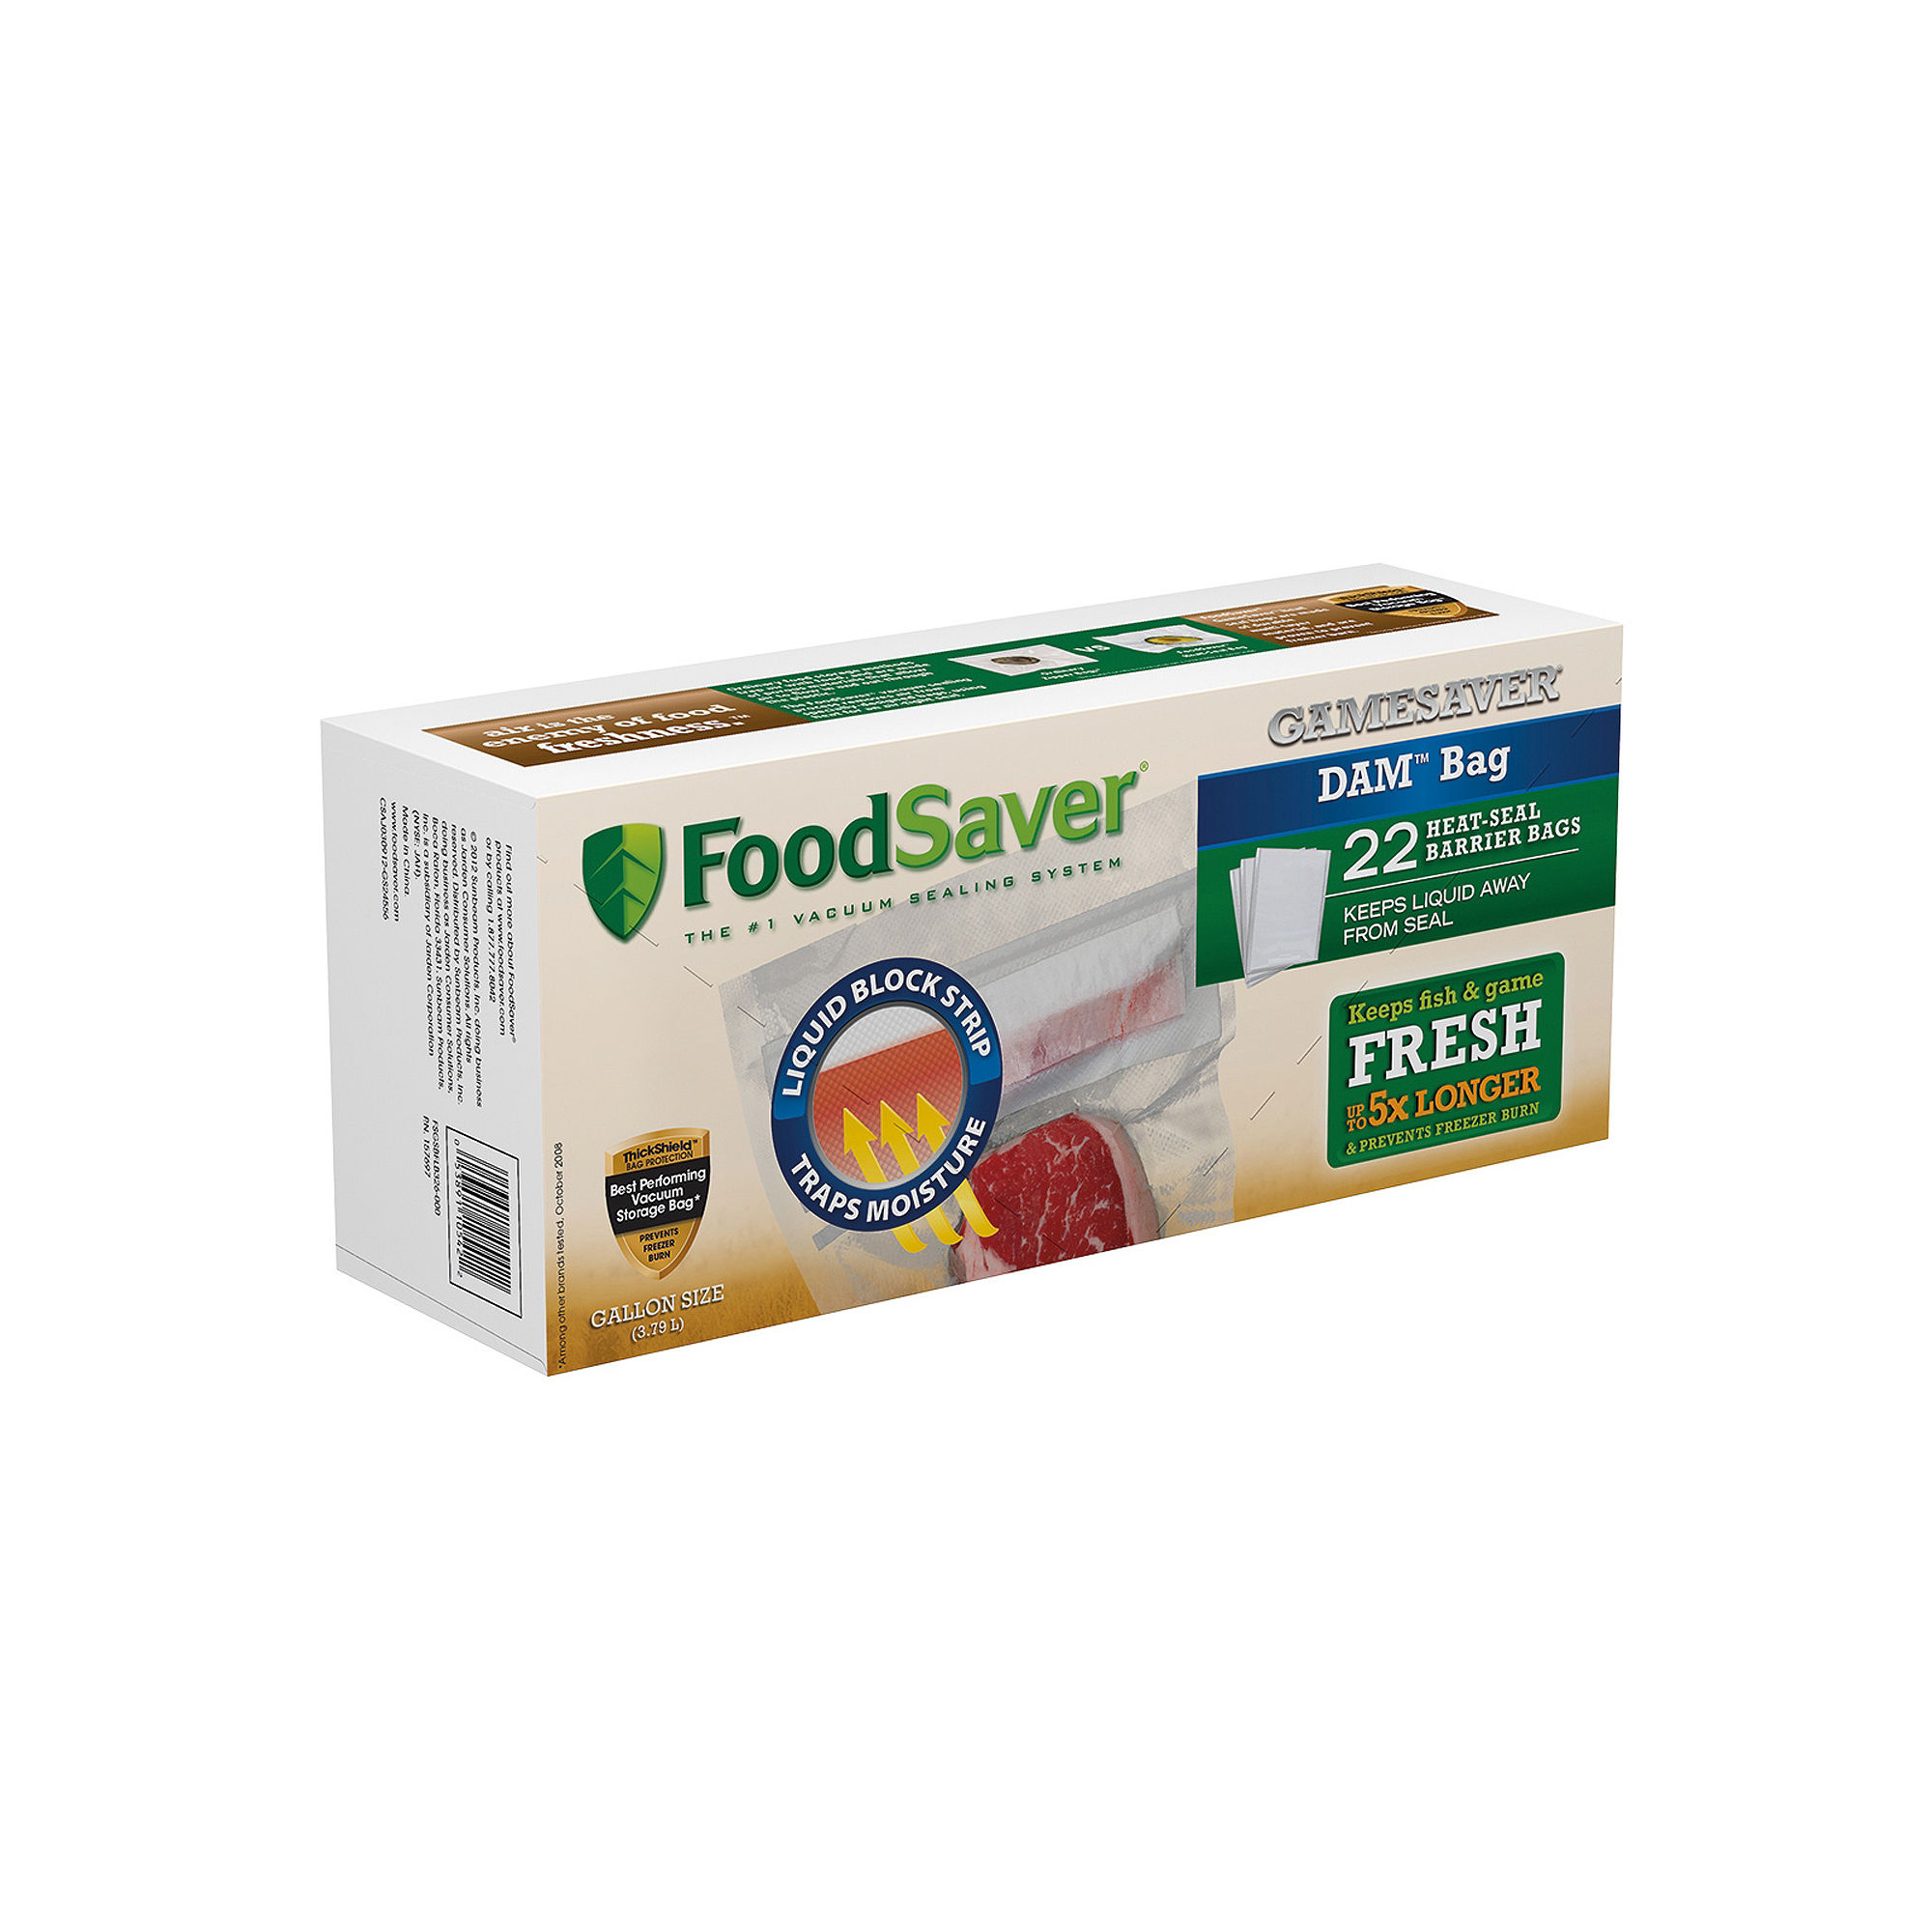 FoodSaver GameSaver DAM 22-pk. Gallon Heat-Seal Bags